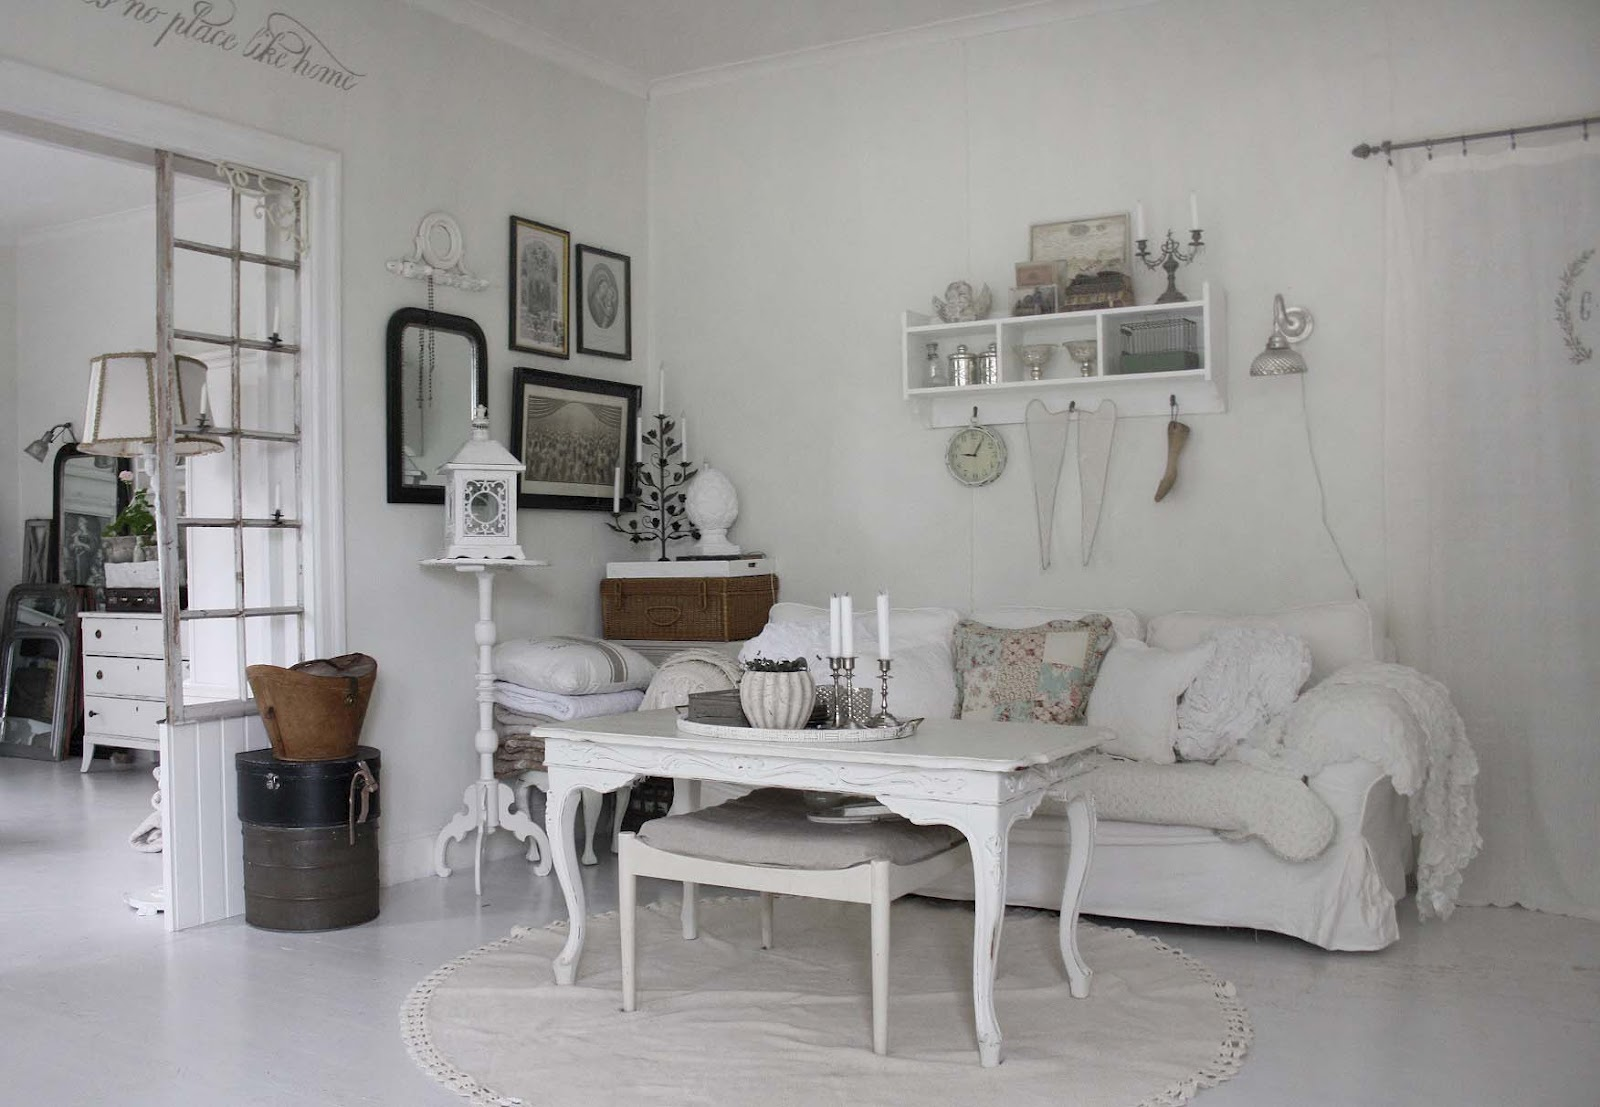 Swedish Blogger by vitt zink och silver decorated her house with love